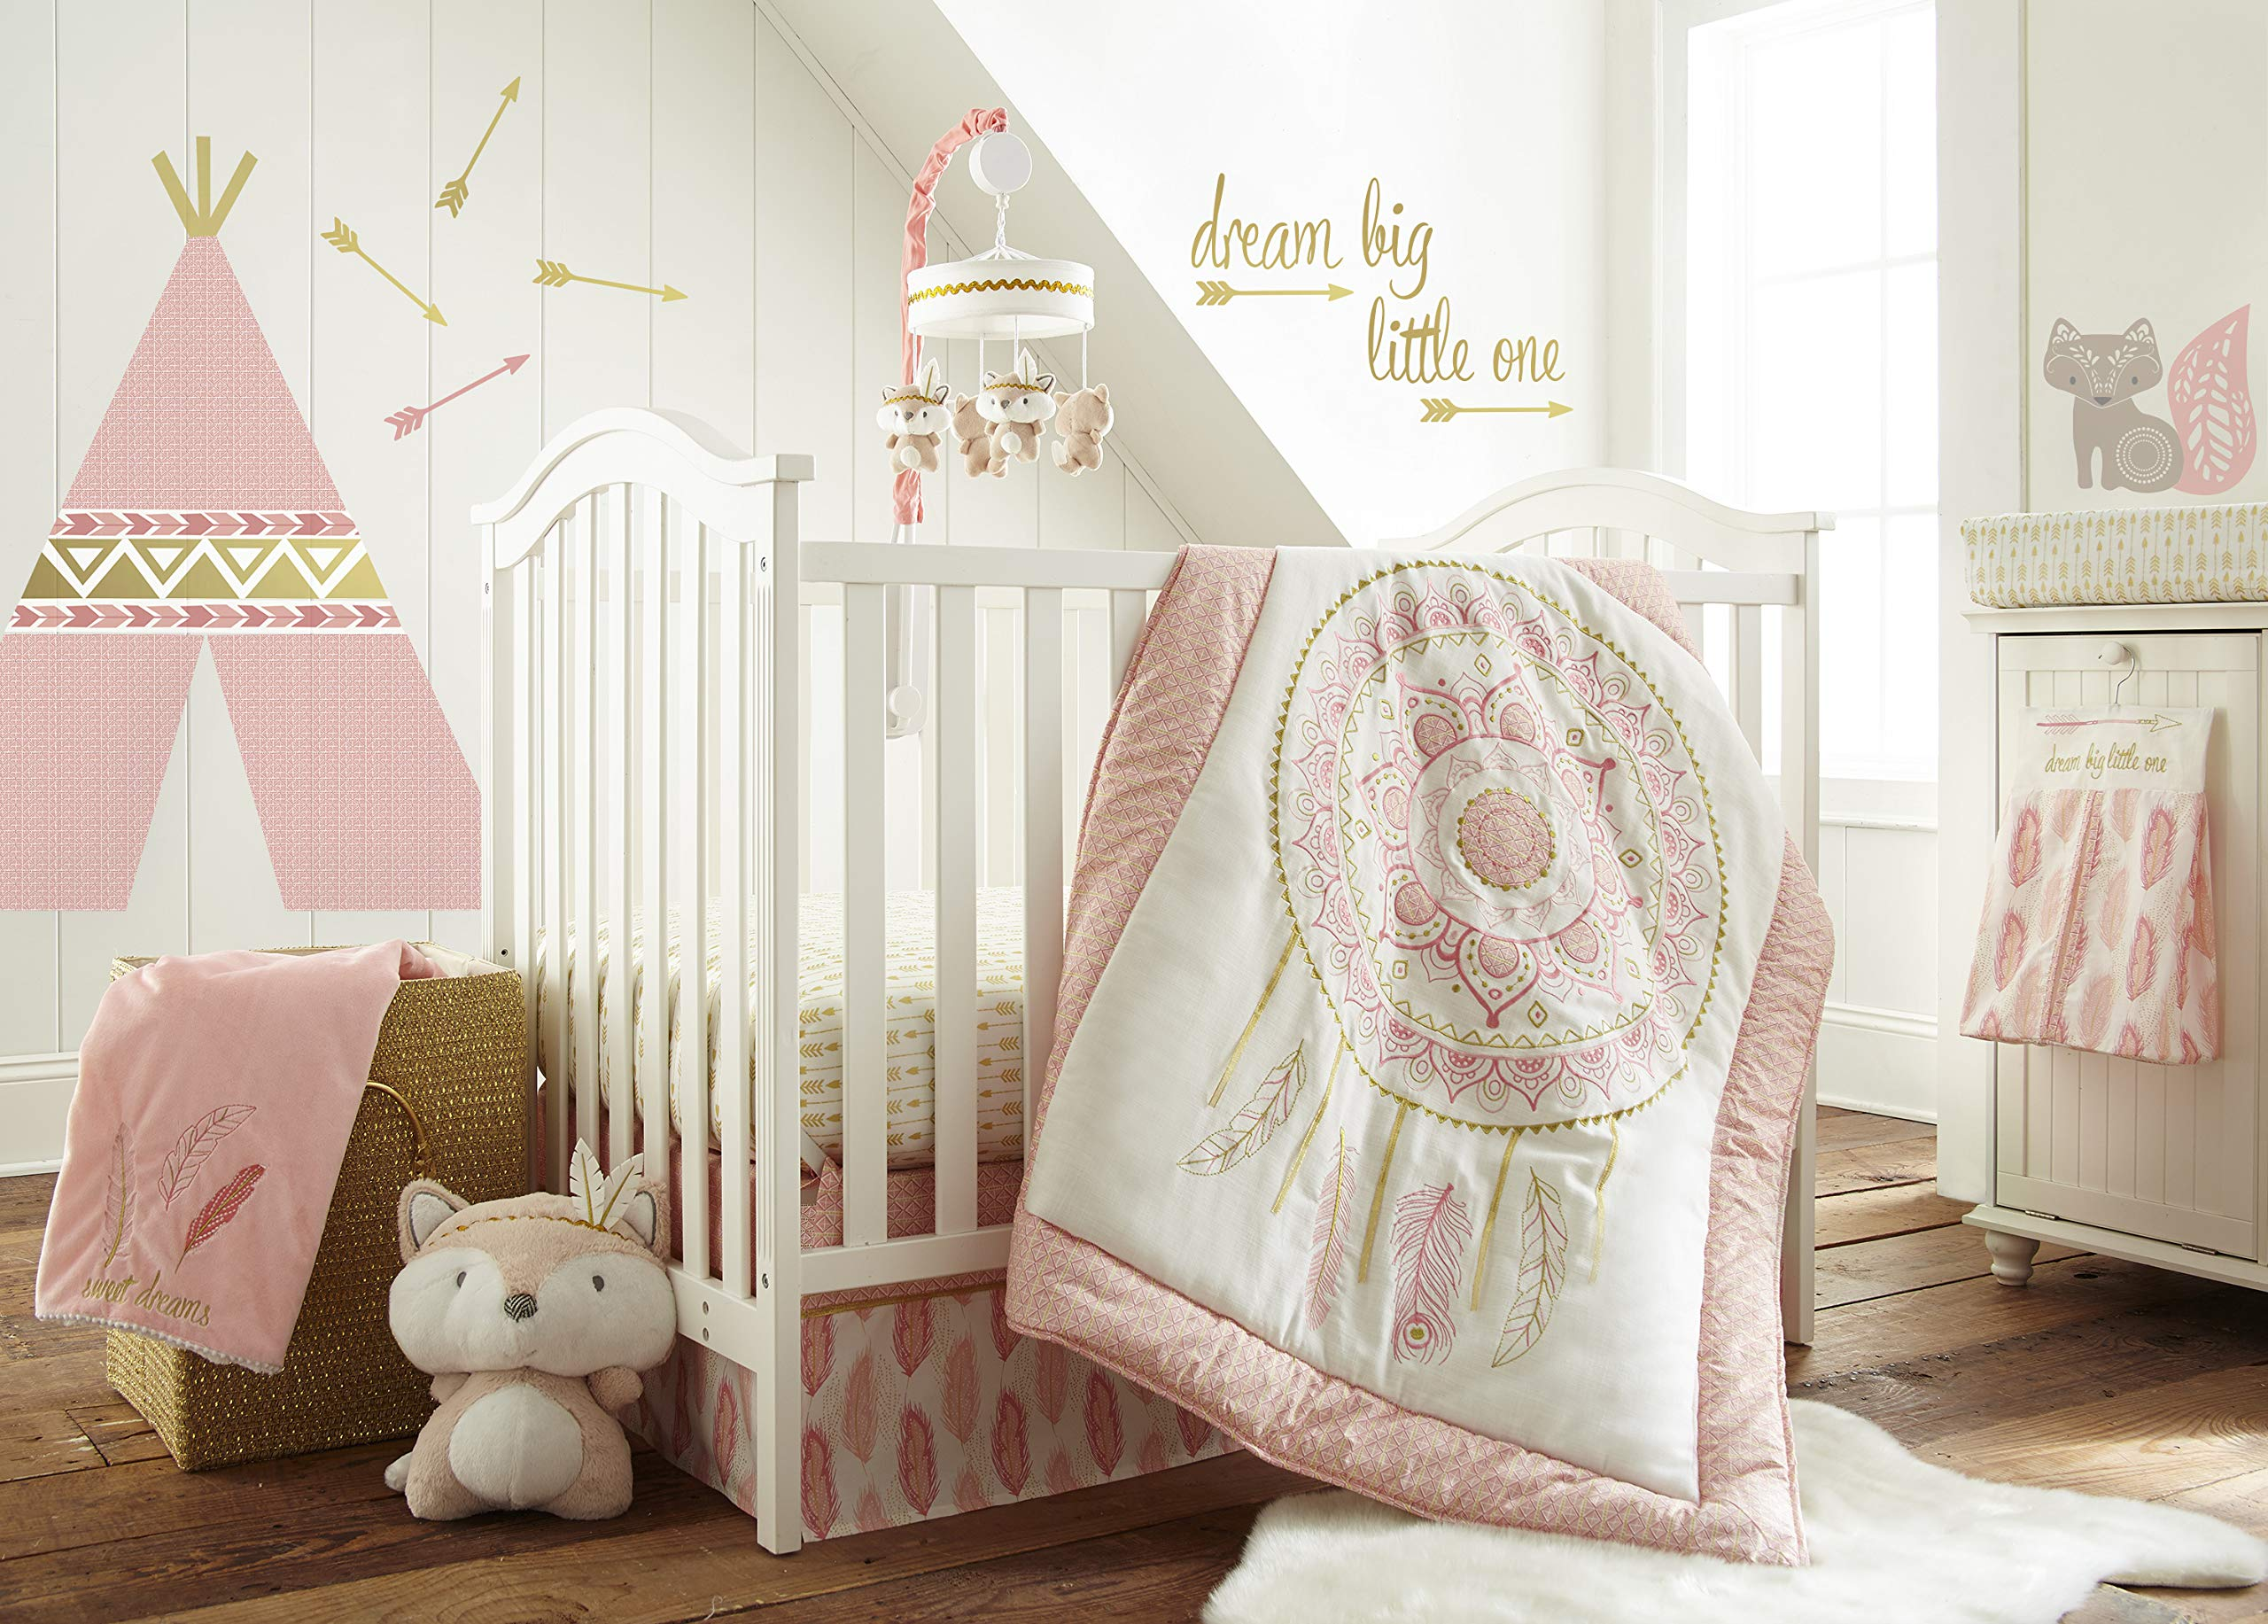 Levtex Baby - Little Feather Pink Crib Bed Set - Baby Nursery Set - Pink Coral Cream Gold - Dreamcatcher - 5 Piece Set Includes Quilt, Fitted Sheet, Diaper Stacker, Wall Decal & Skirt/Dust Ruffle